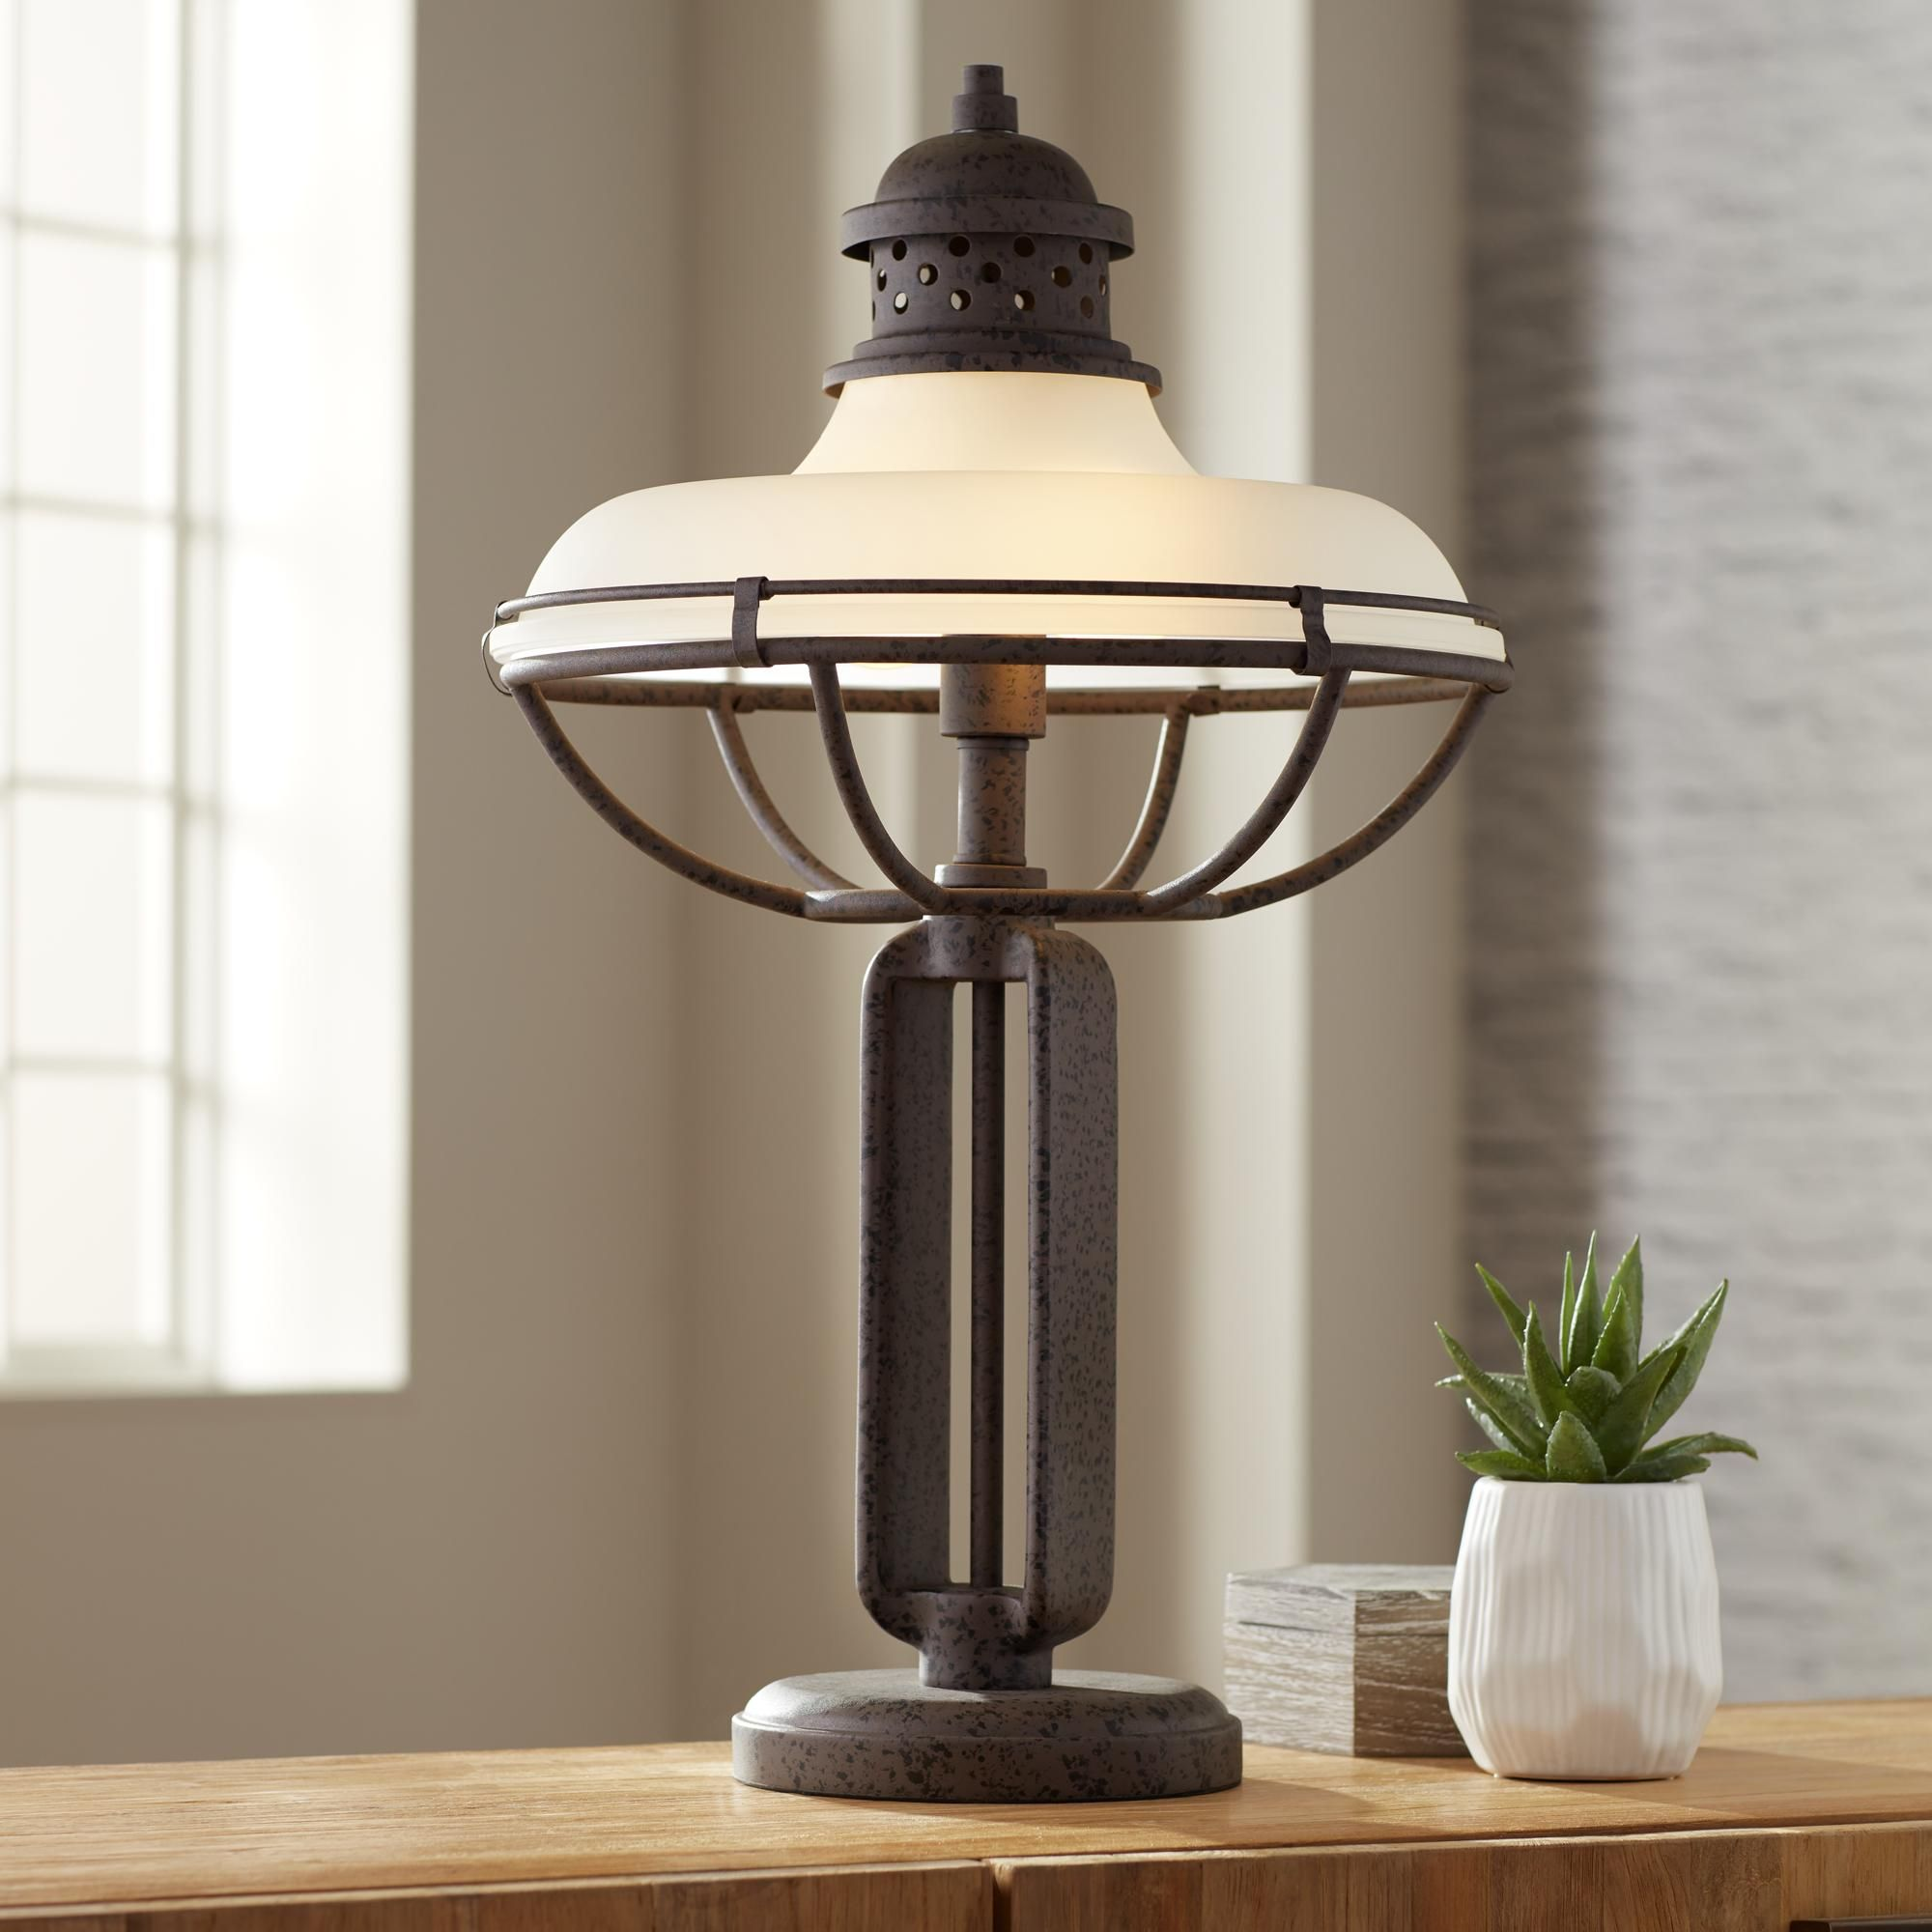 Franklin Iron Works Glass And Metal Industrial Table Lamp Table